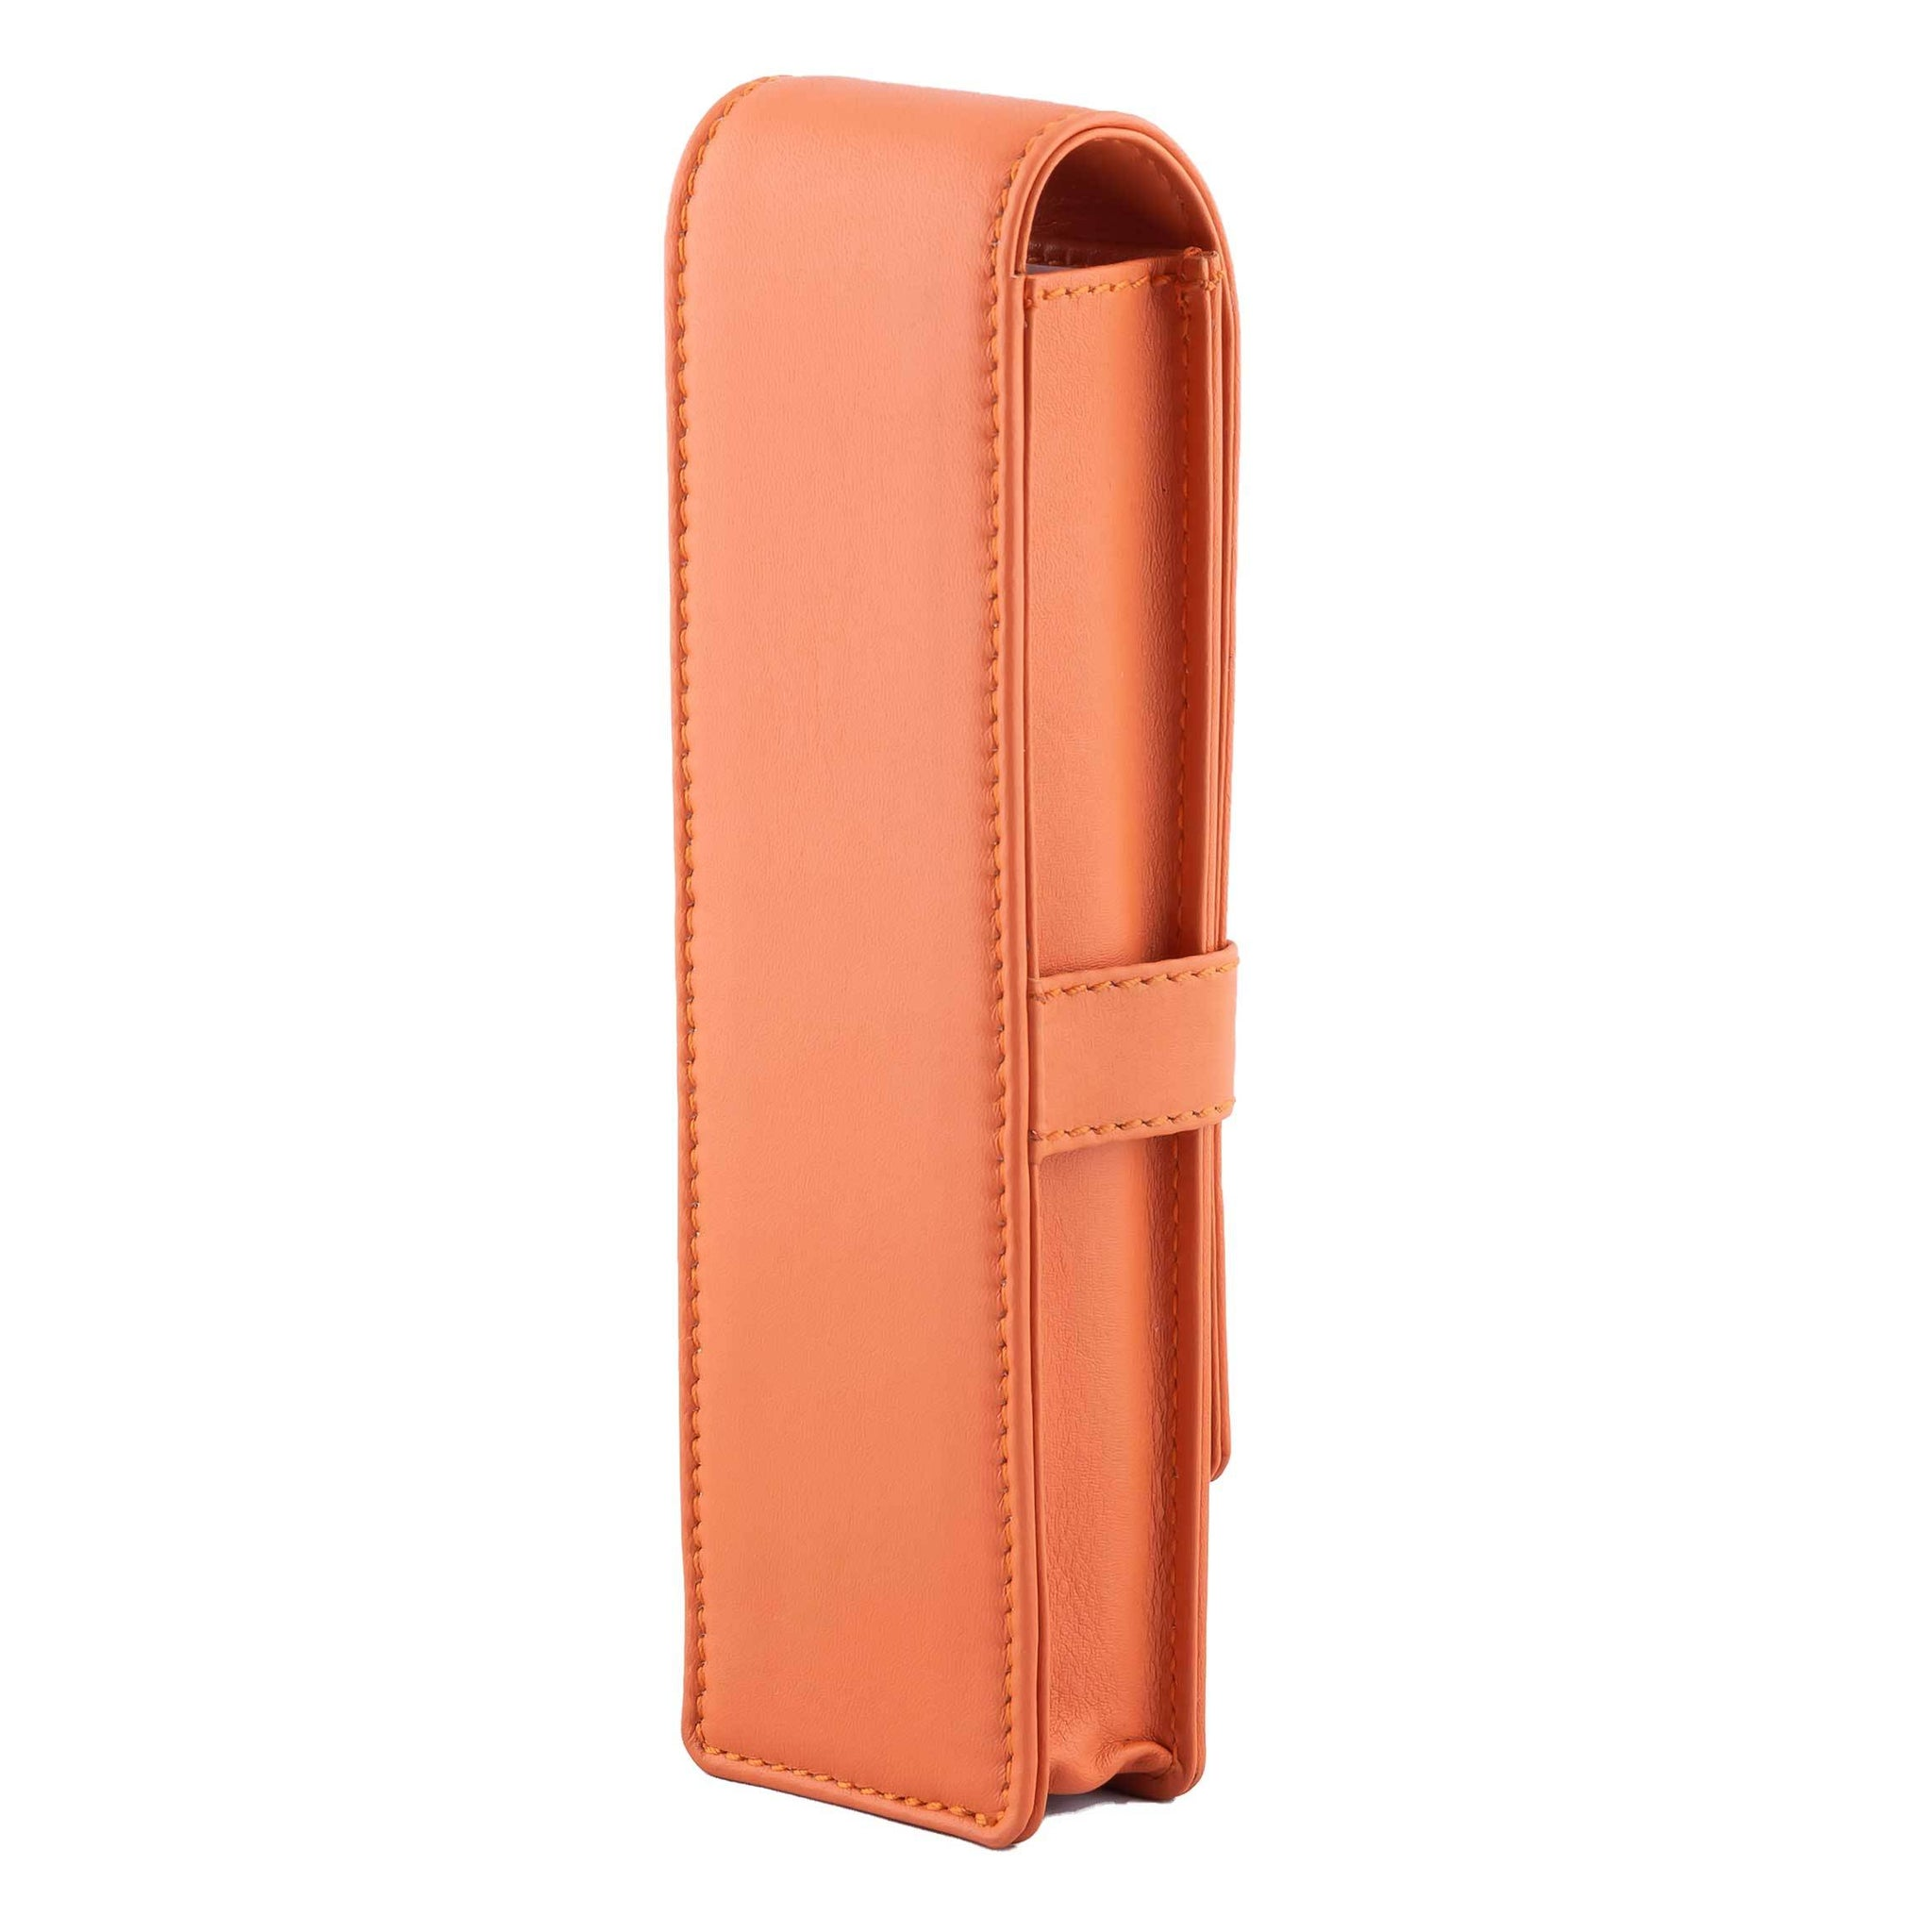 DiLoro Double Pen Case Holder in Top Quality, Full Grain Nappa Leather - Orange